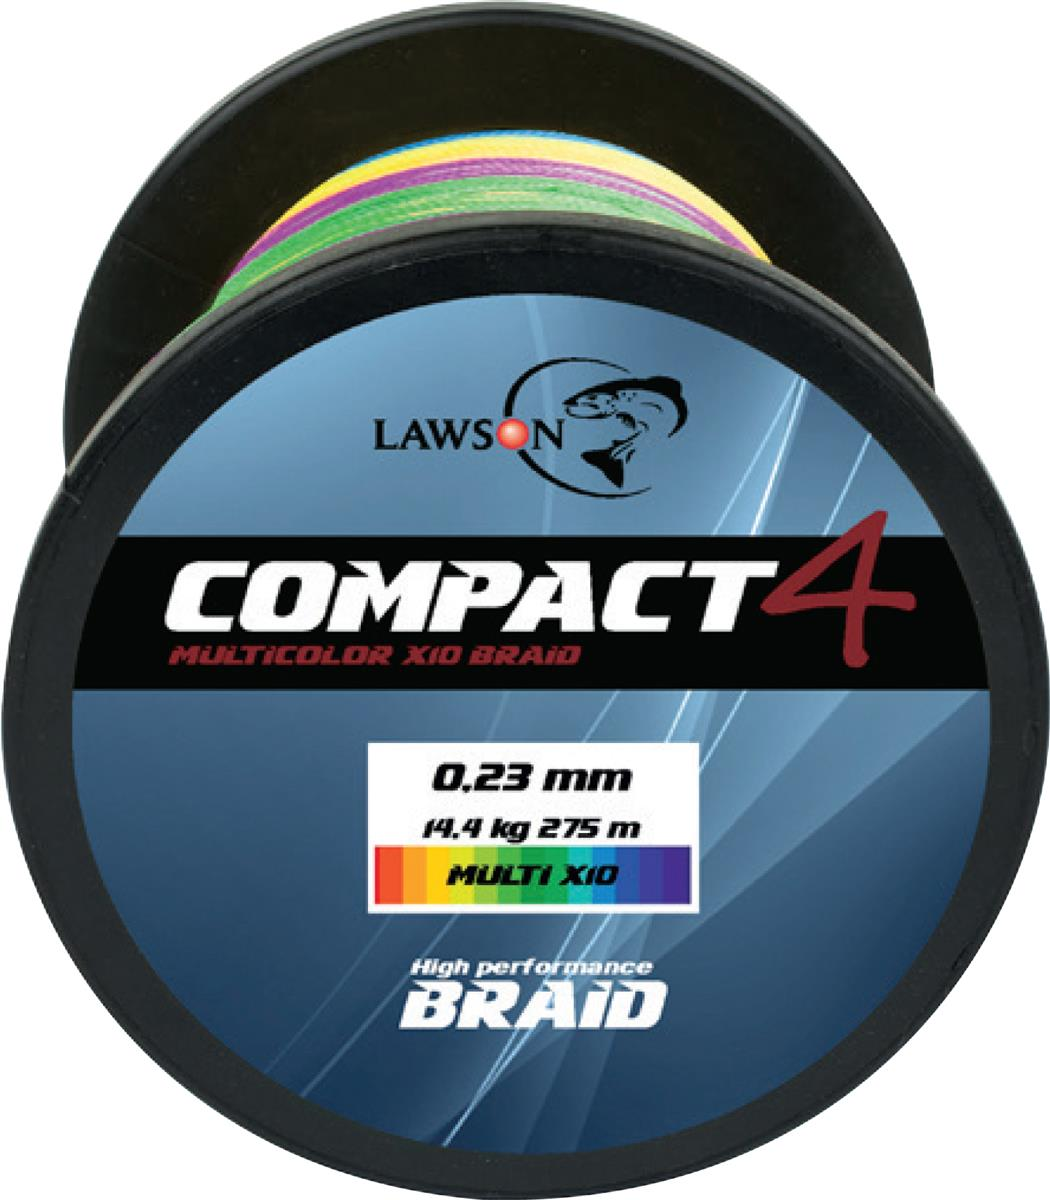 Lawson Compact 4 Multicolor + X10 Braid Storspole